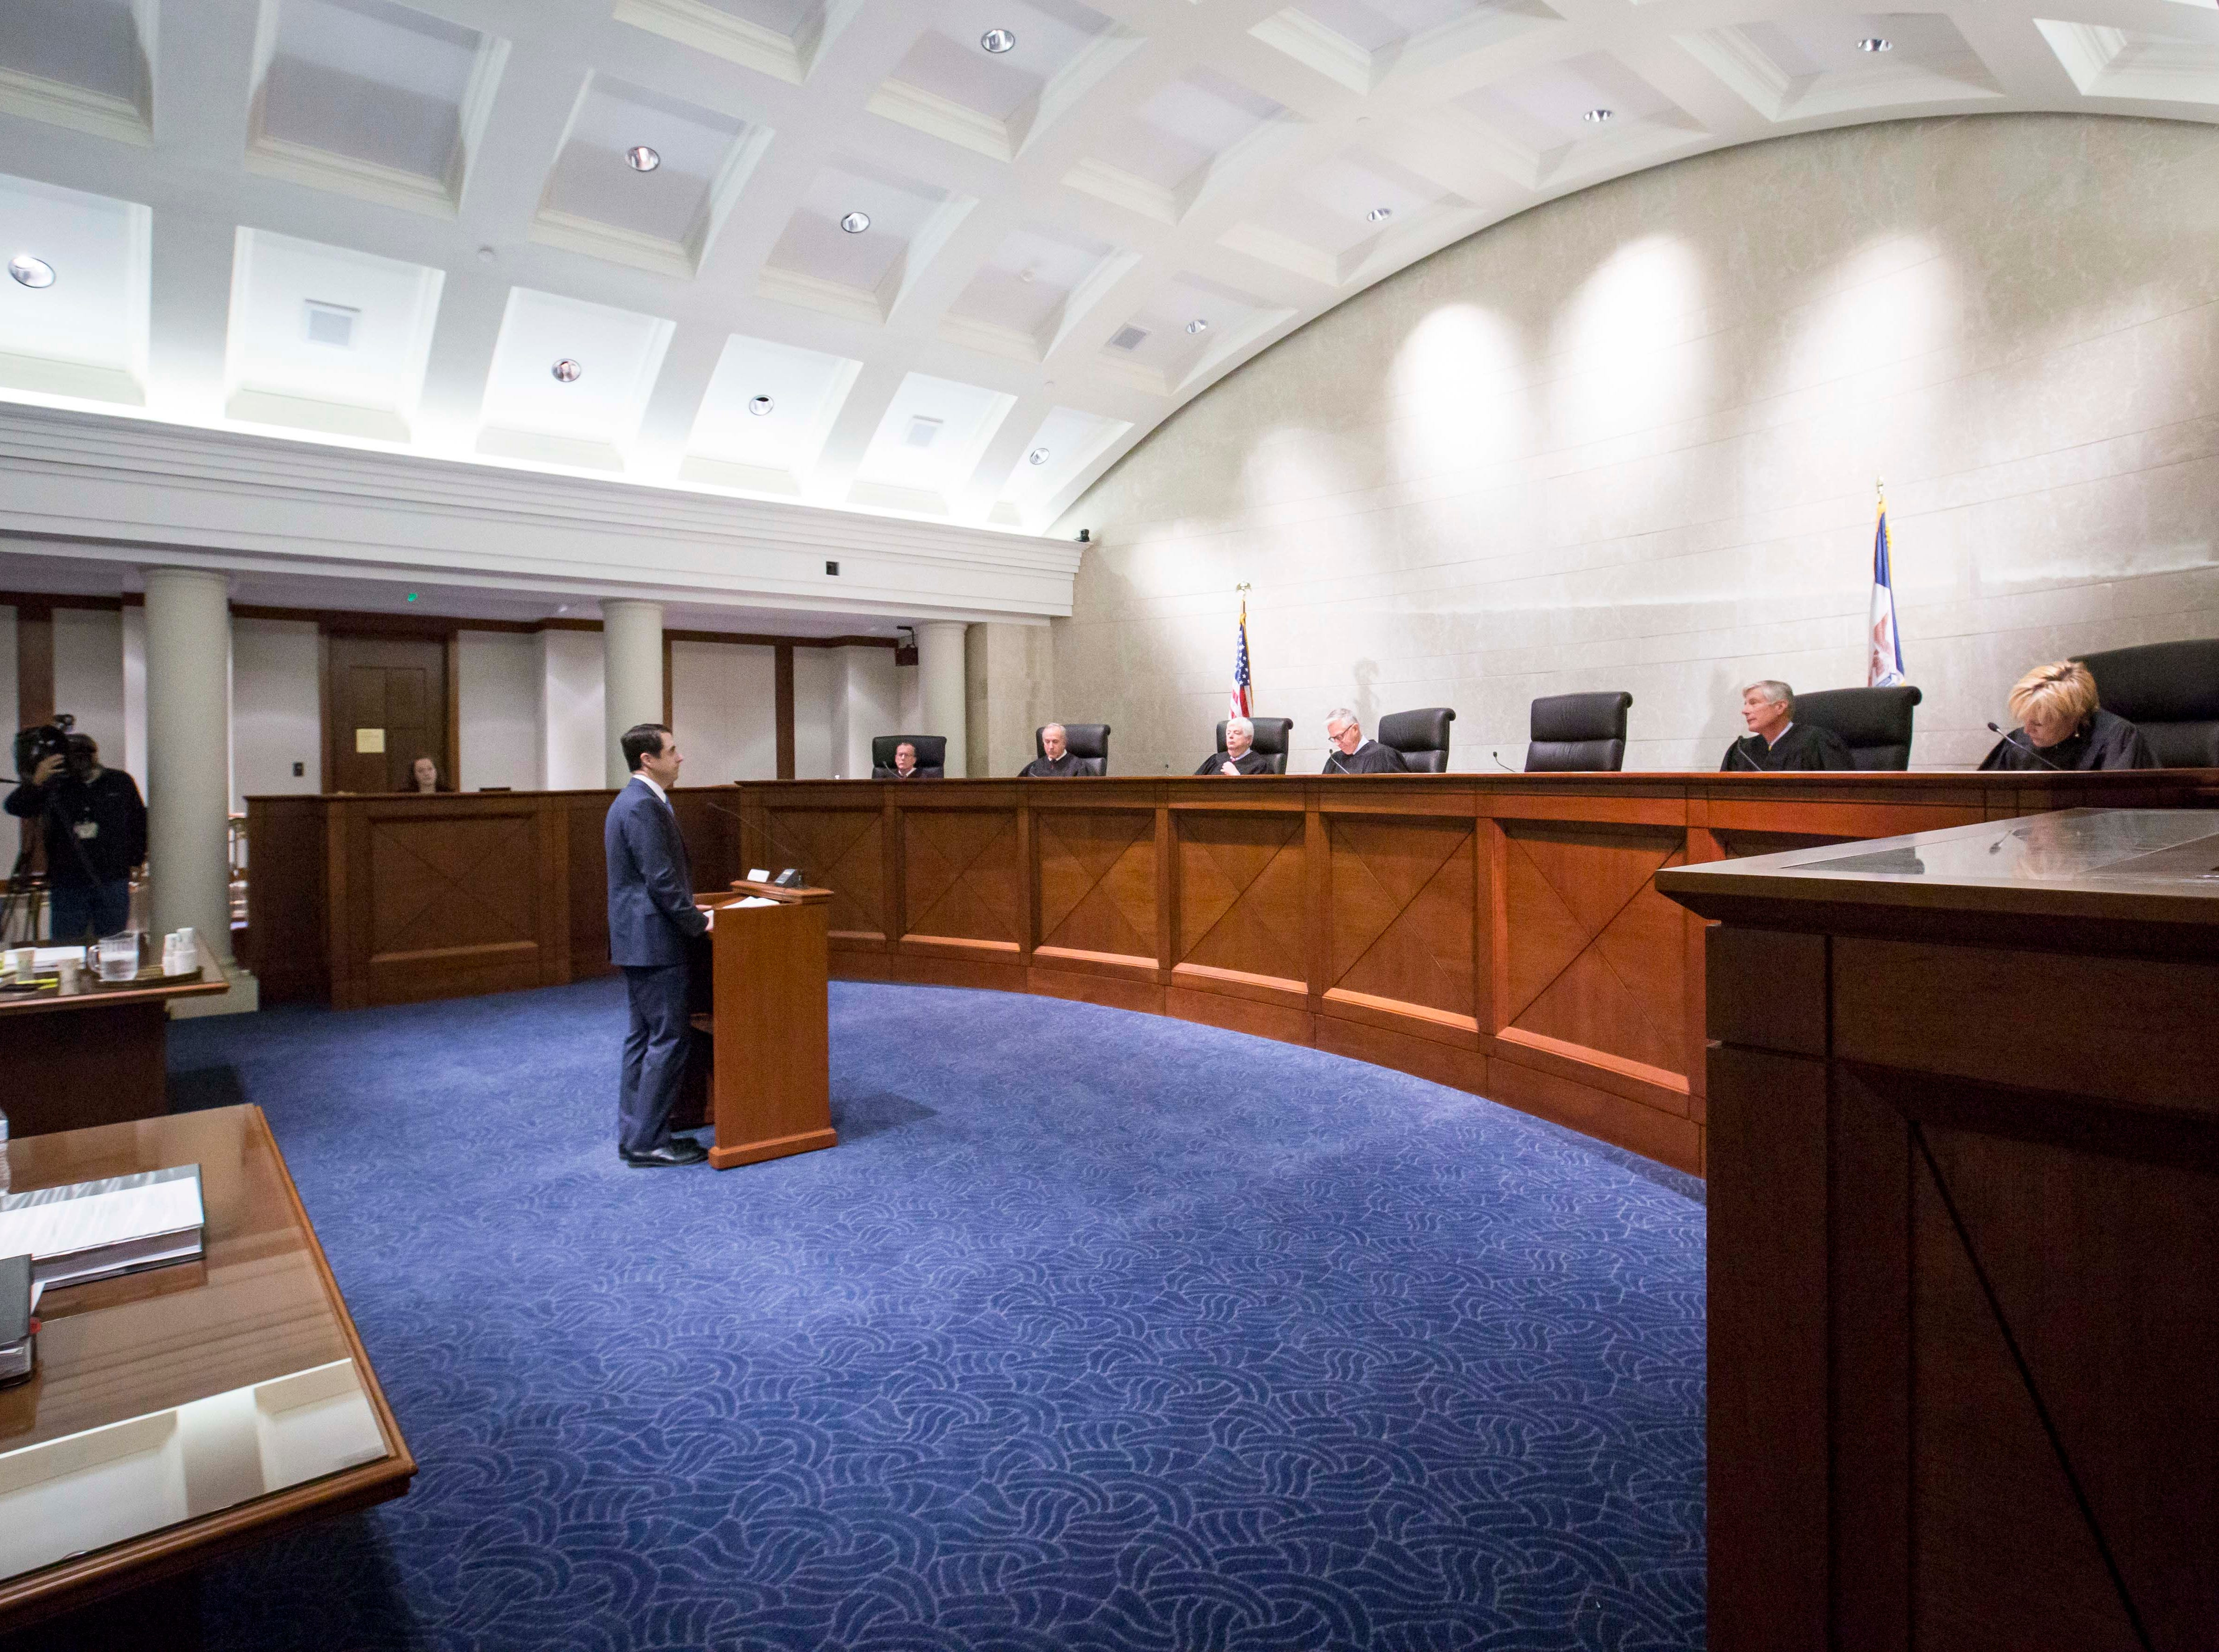 Attorney Matthew McDermott speaks to the Iowa Supreme Court as they hear arguments in two challenges to Iowa's collective bargaining law change last year. The challenges are from AFSCME and the Iowa State Education Association at the Judicial Building Wednesday, Dec. 12, 2018, in Des Moines, Iowa.